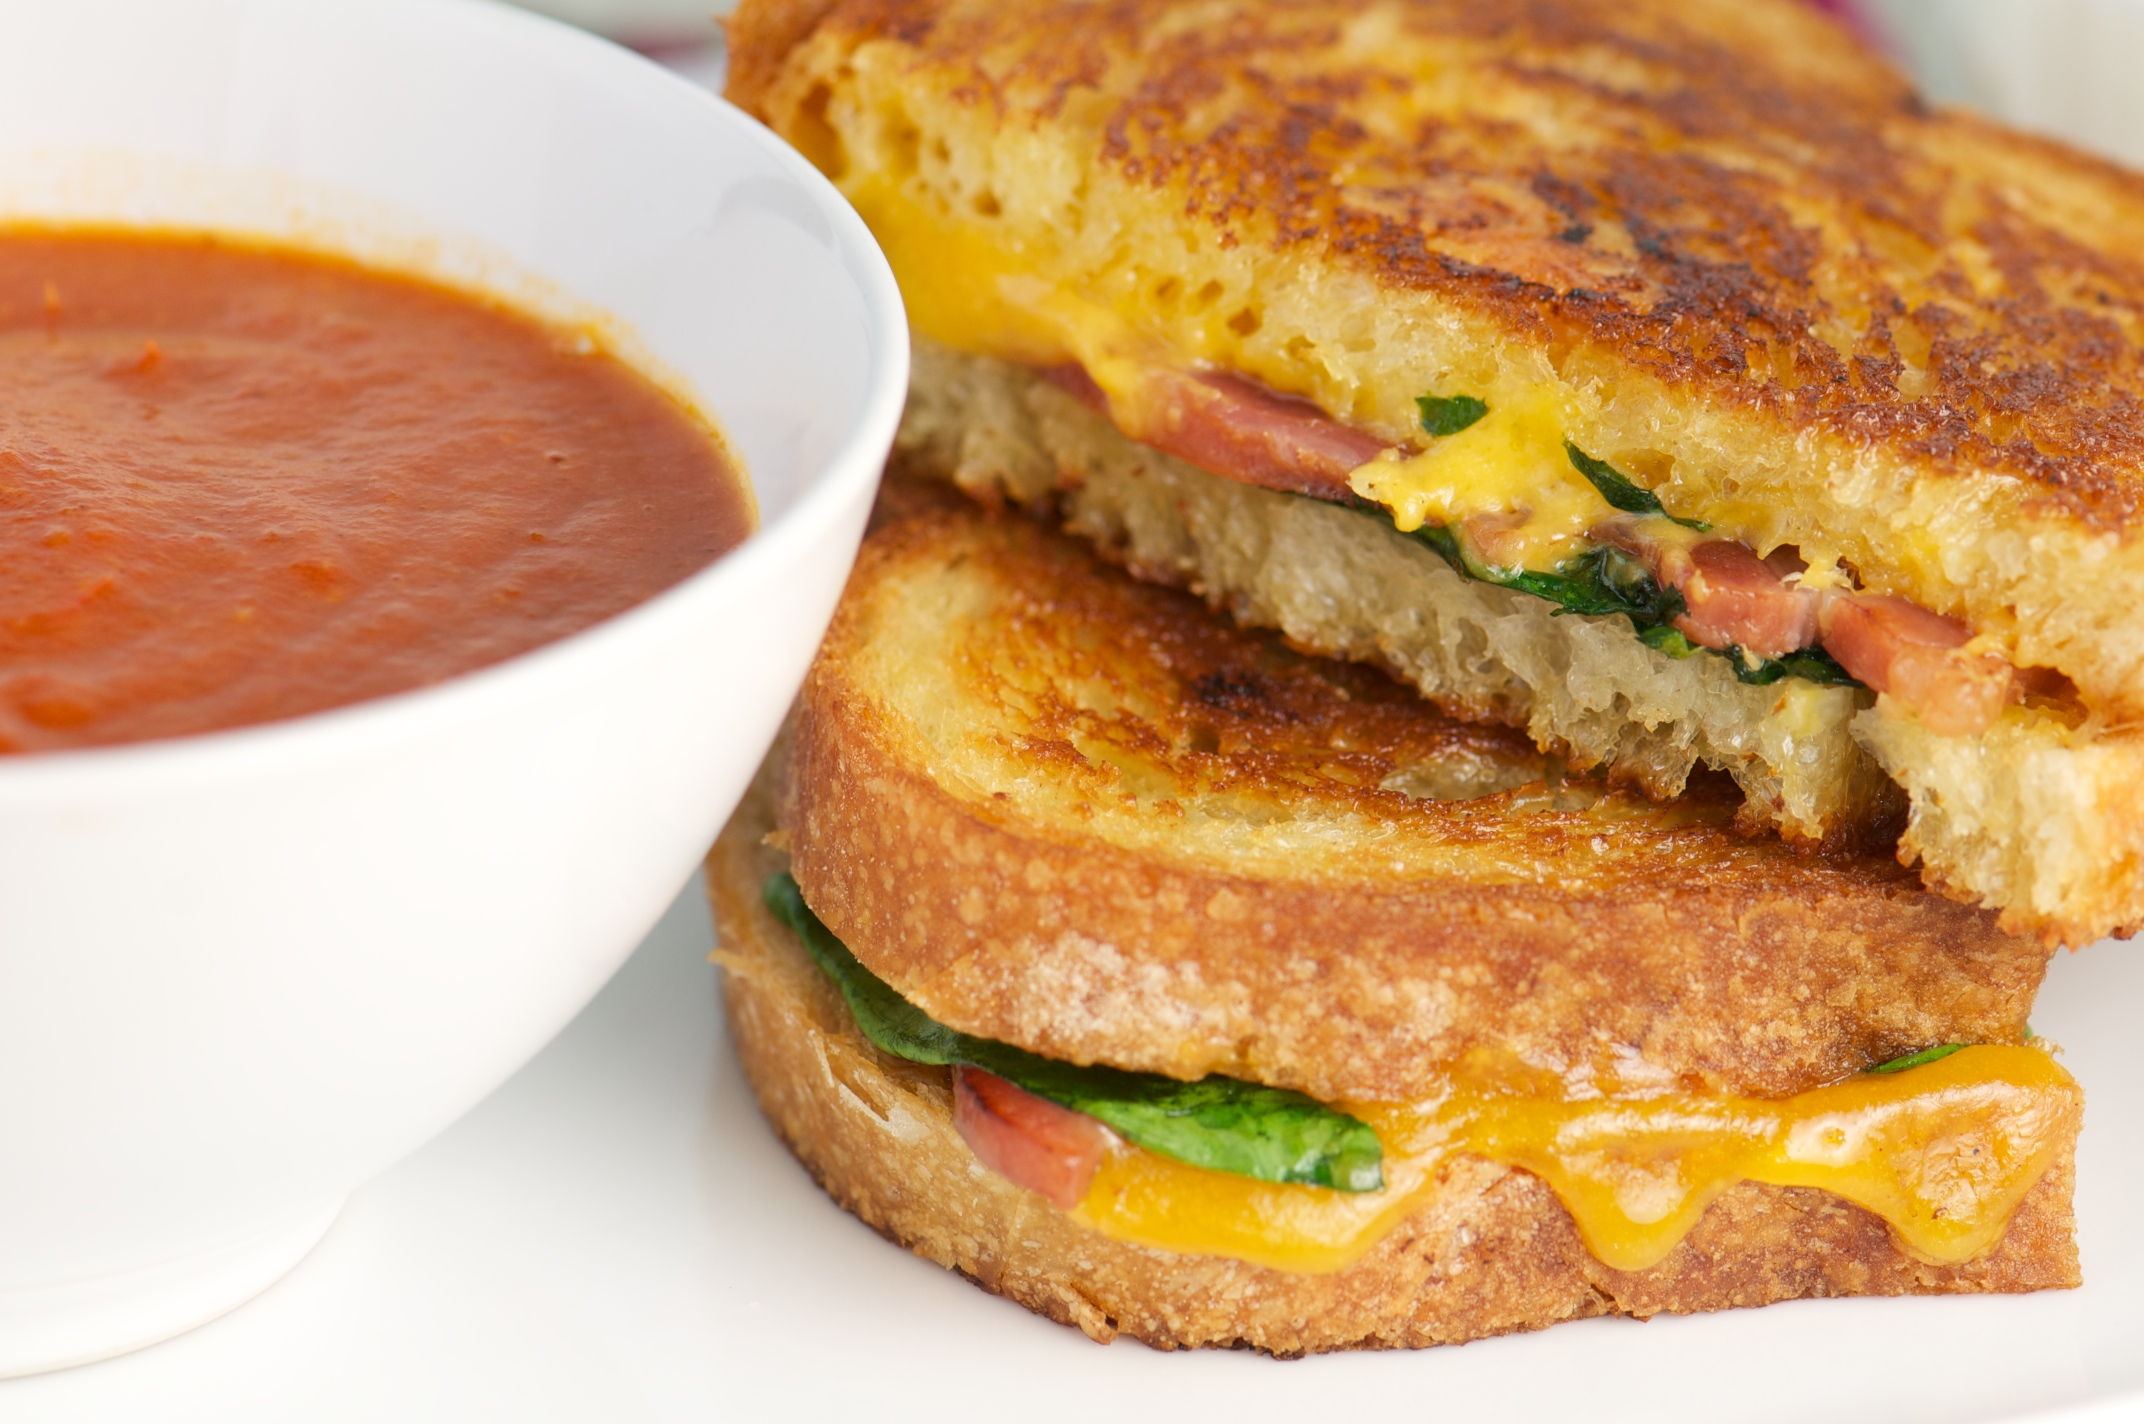 Grilled Cheese Grows Up | Mixed Greens Blog